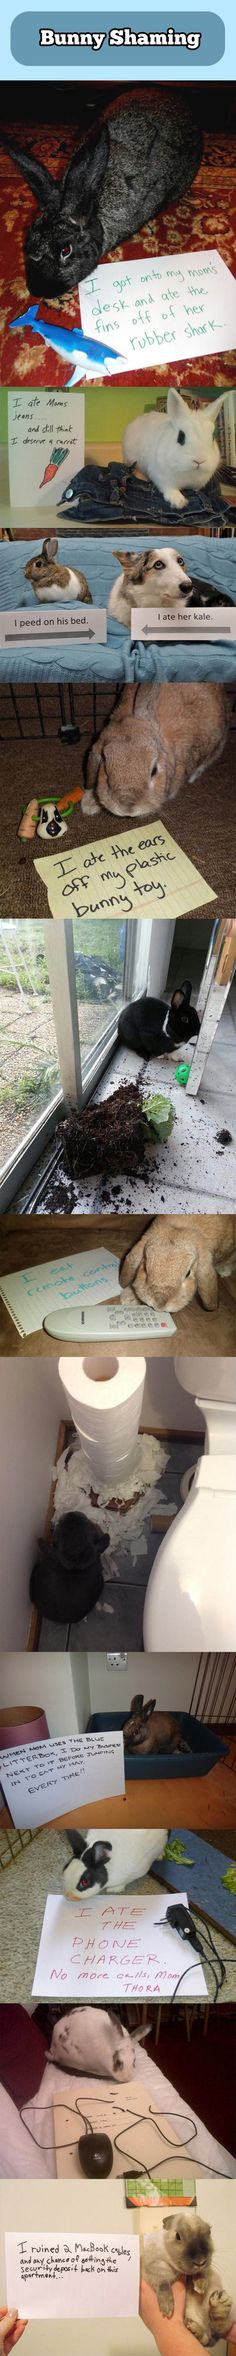 You've seen dog shaming before. Now we present to you... bunny shaming!